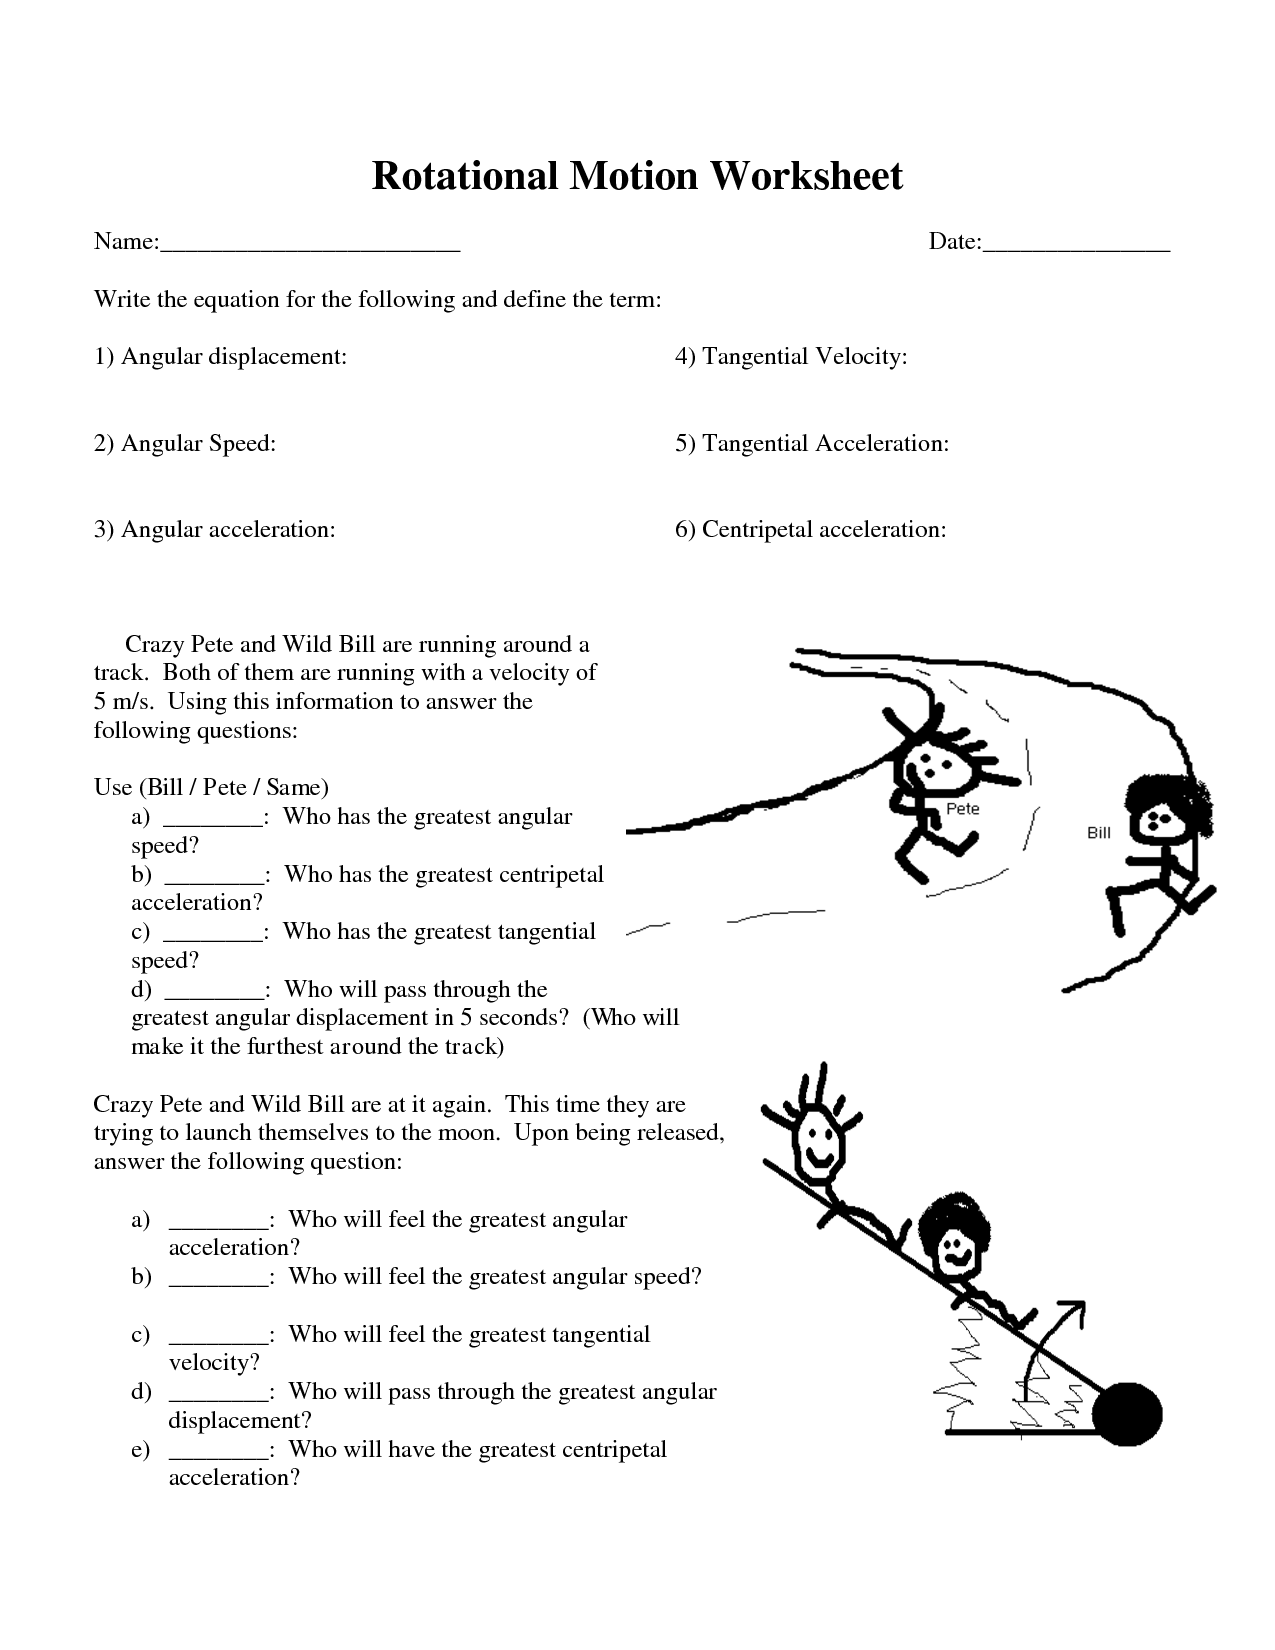 Rotational Motion Worksheet With Answers